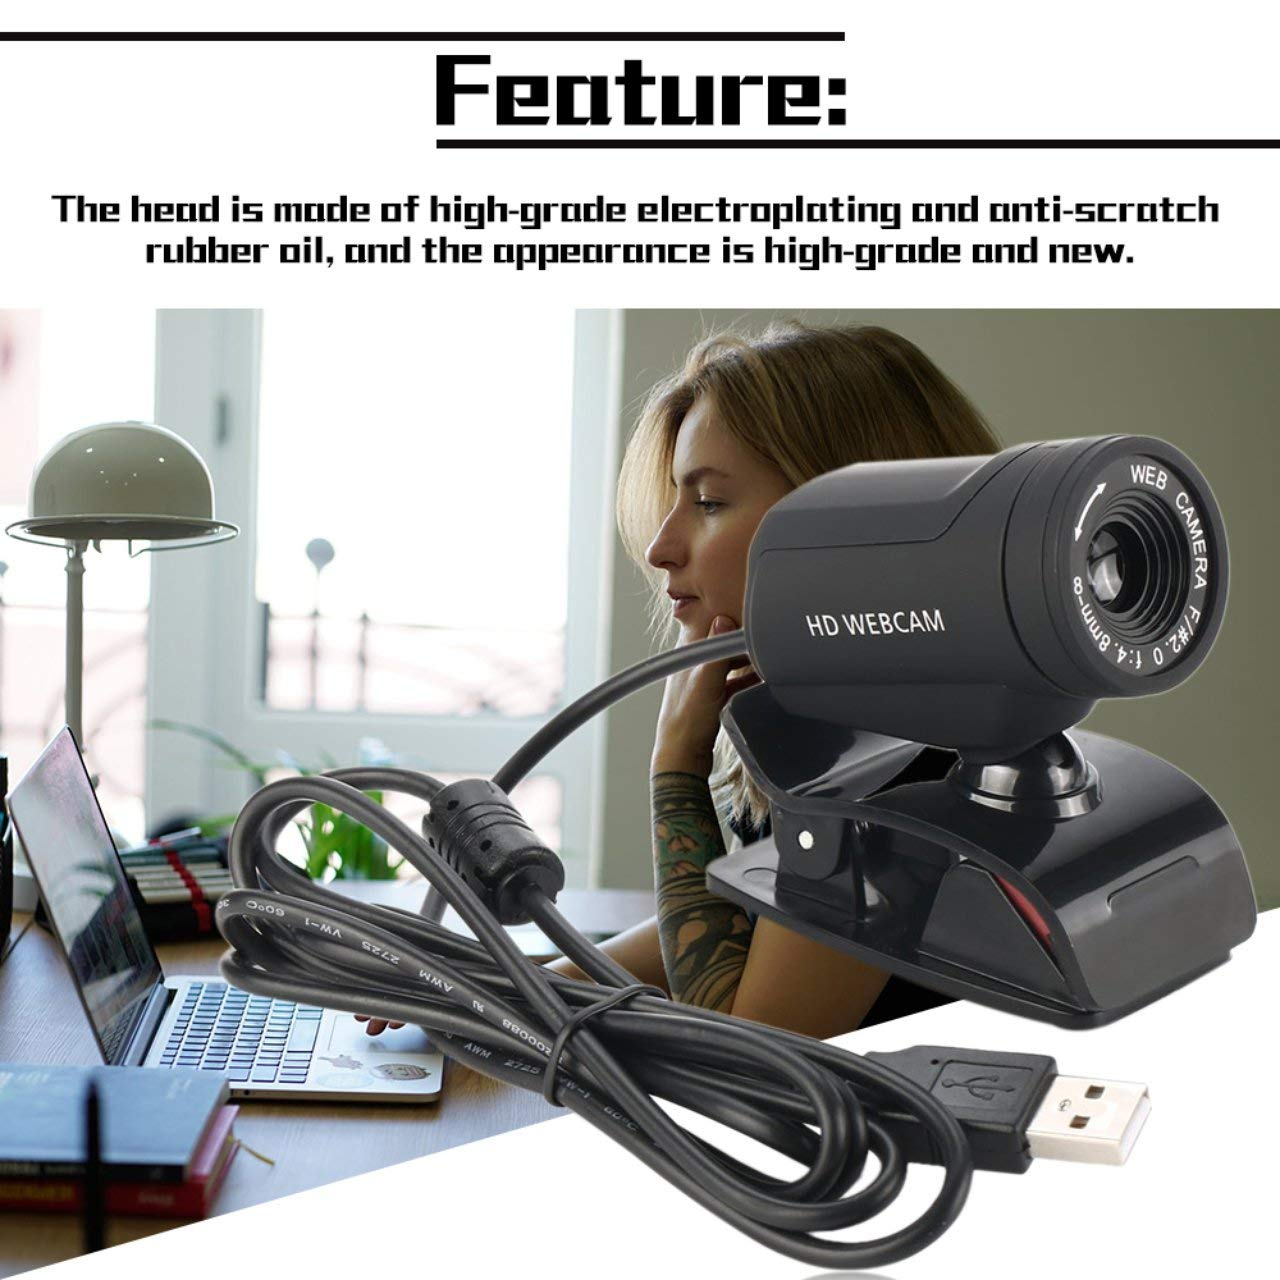 A7220D Webcam HD Web Computer Camera Built-in Microphone for Desktop PC Laptop USB Plug and Play for Video Calling